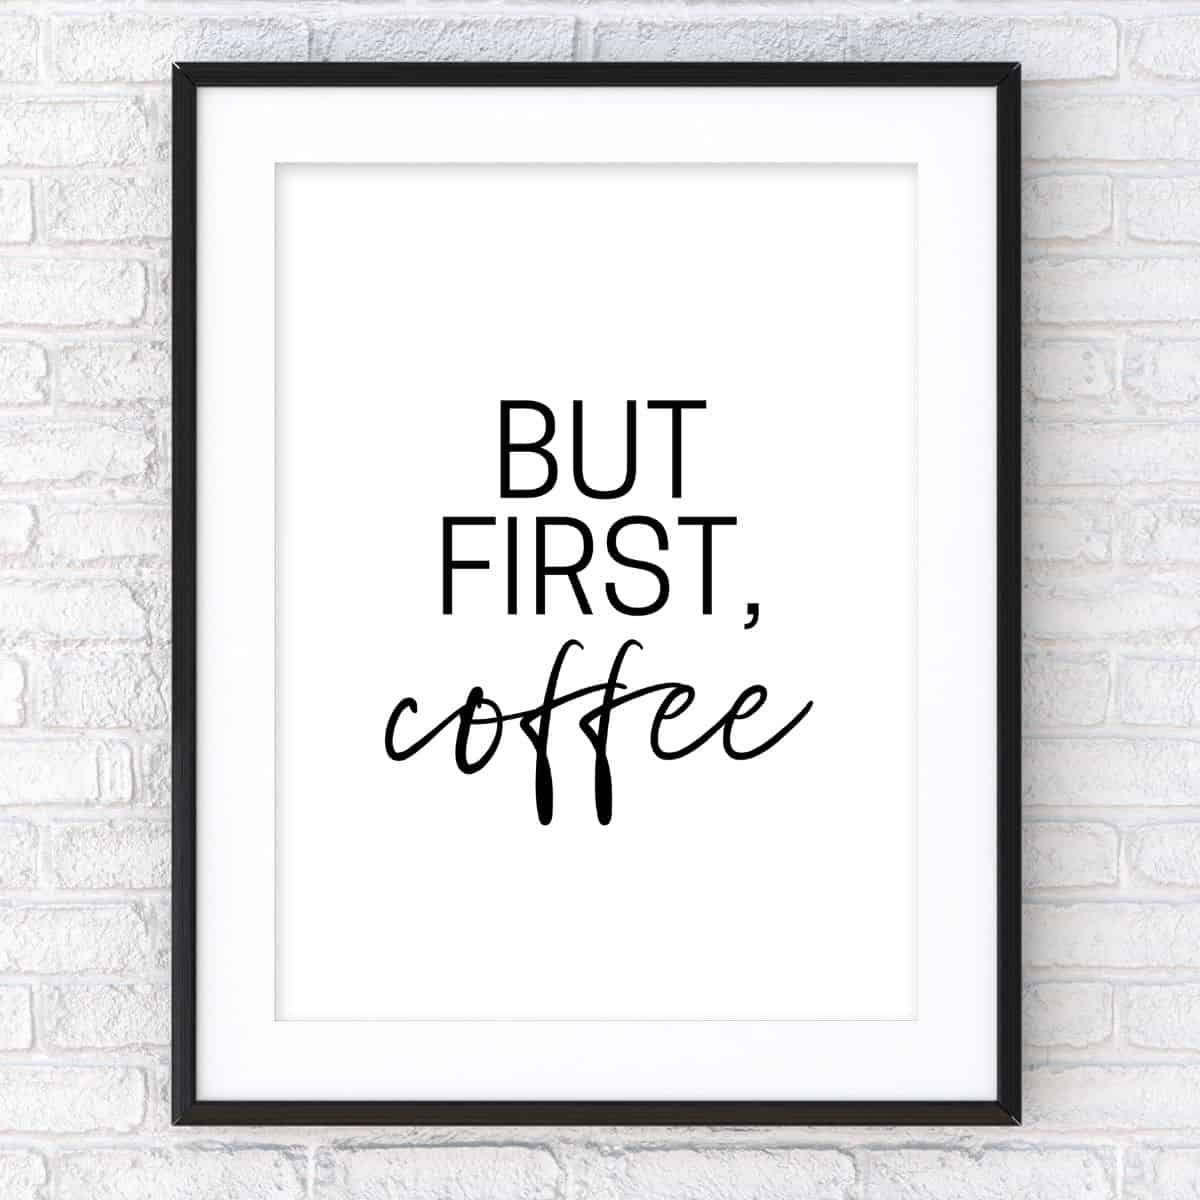 Black frame on the brick wall with the text: But first, coffee